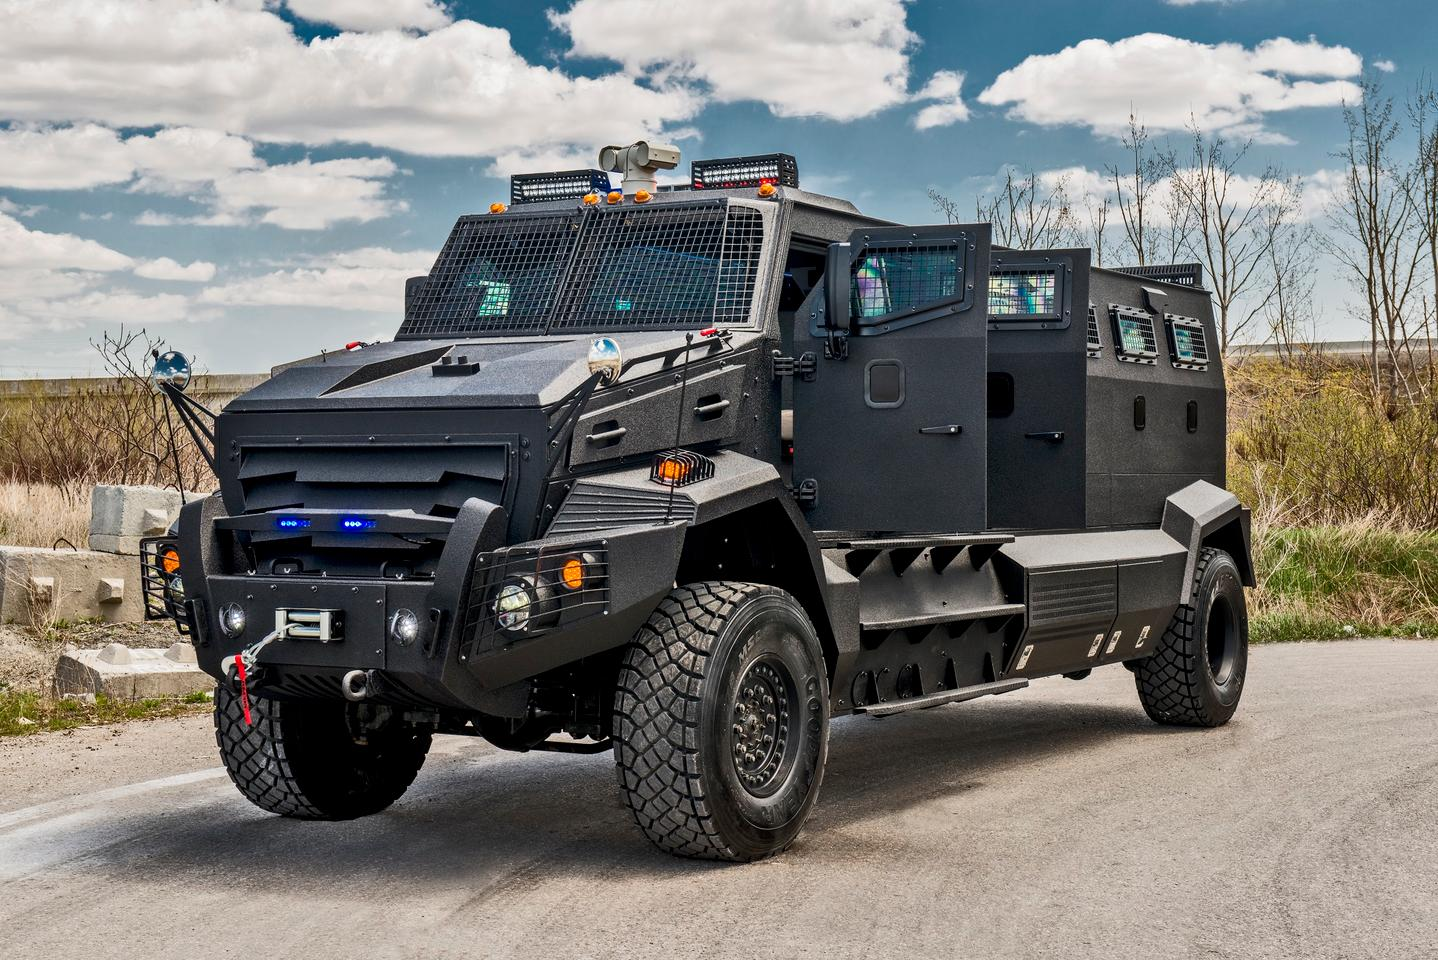 The INKAS Huron APC